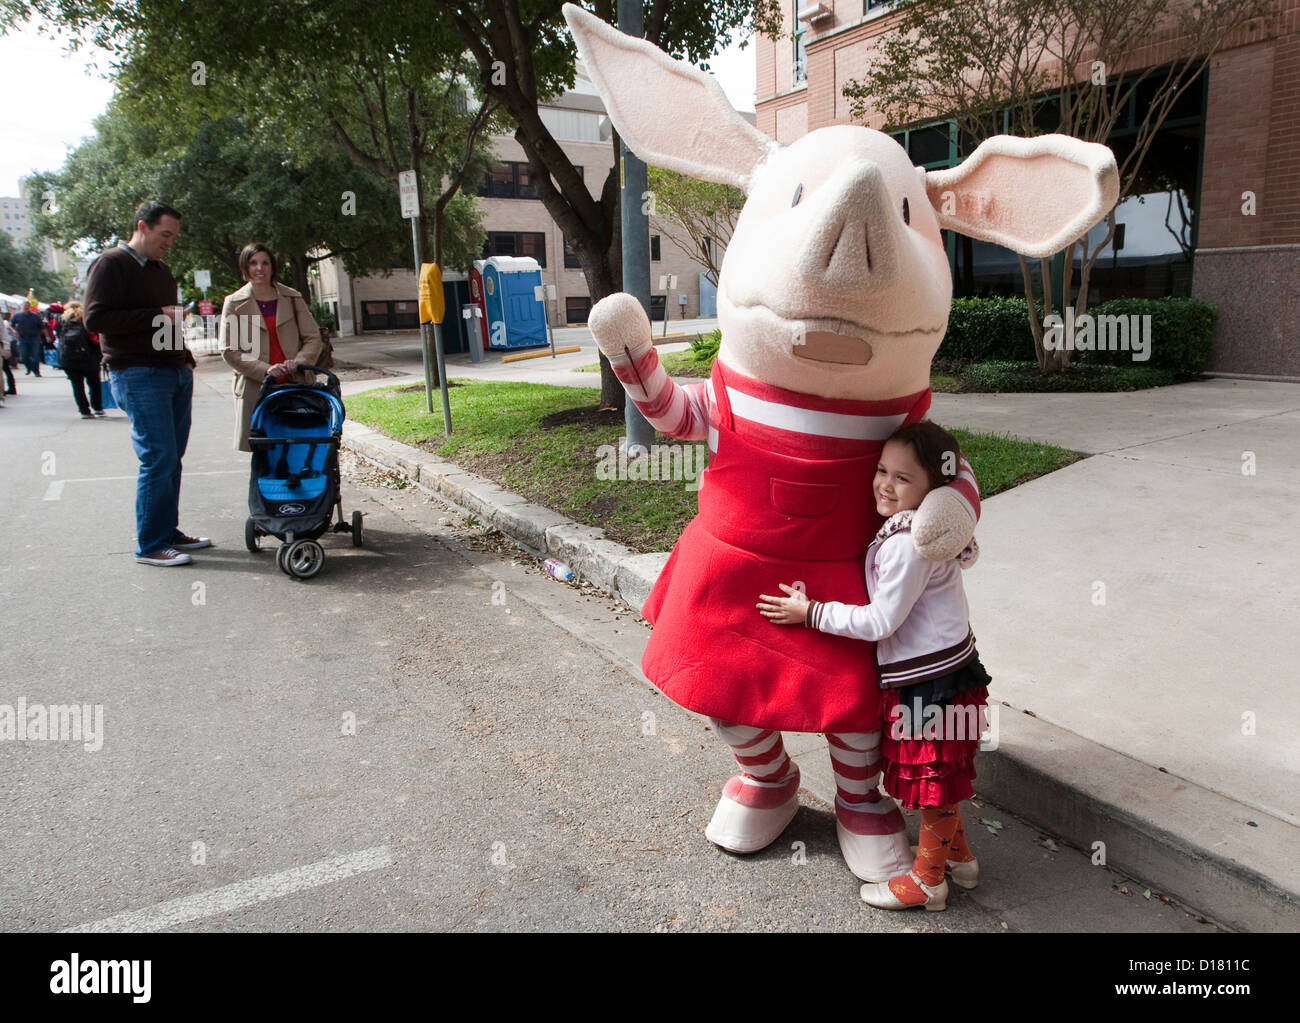 Young girl hugs children's book character Olivia during the Texas Book Festival in Austin, Texas - Stock Image